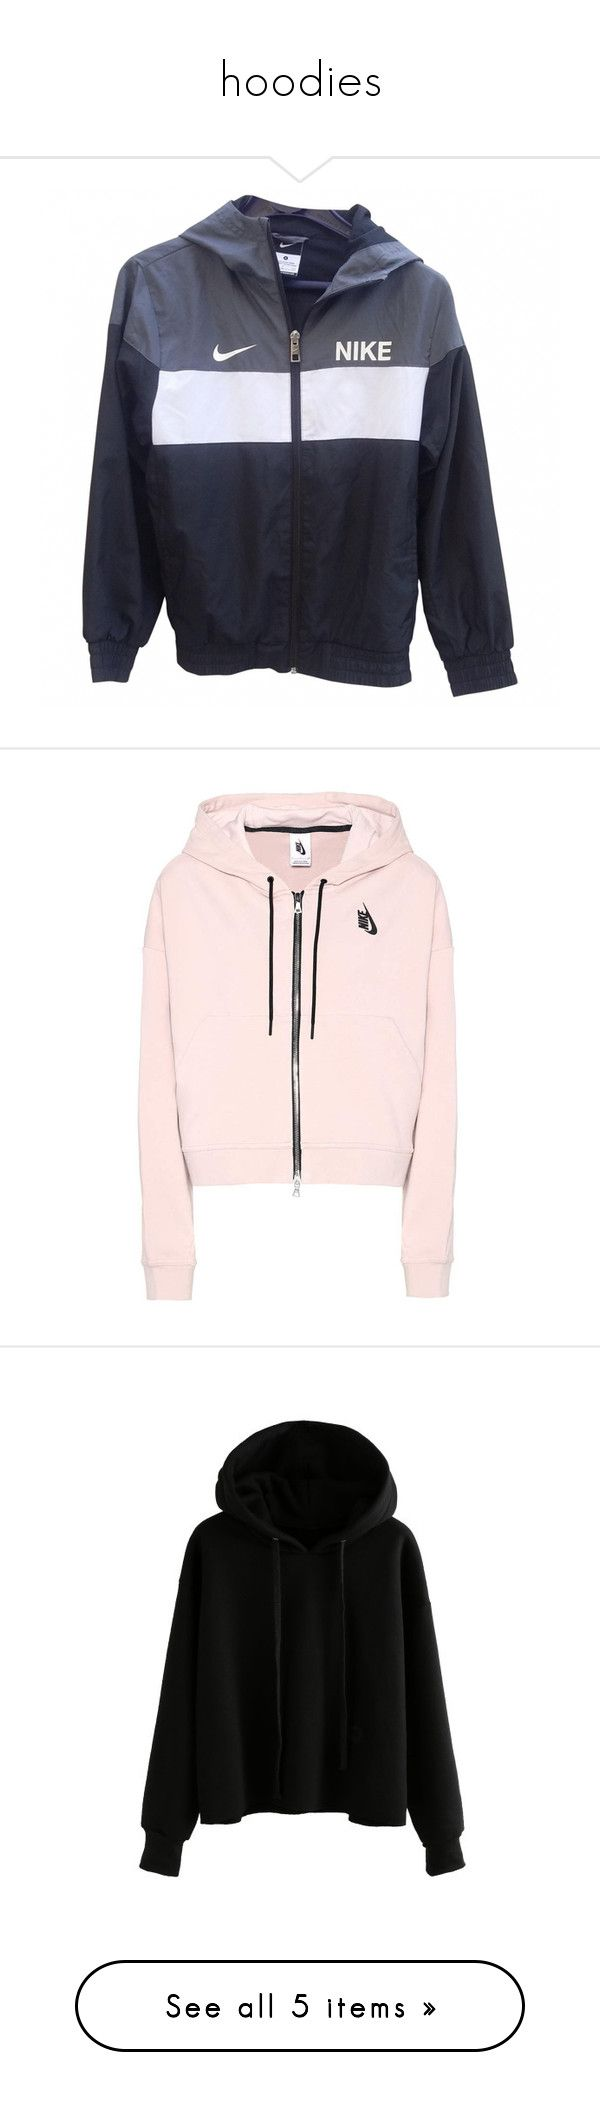 """""""hoodies"""" by frontrowmendes ❤ liked on Polyvore featuring outerwear, jackets, coats & jackets, tops, zipper jacket, nike, nike jackets, blue jackets, zip jacket and hoodies"""